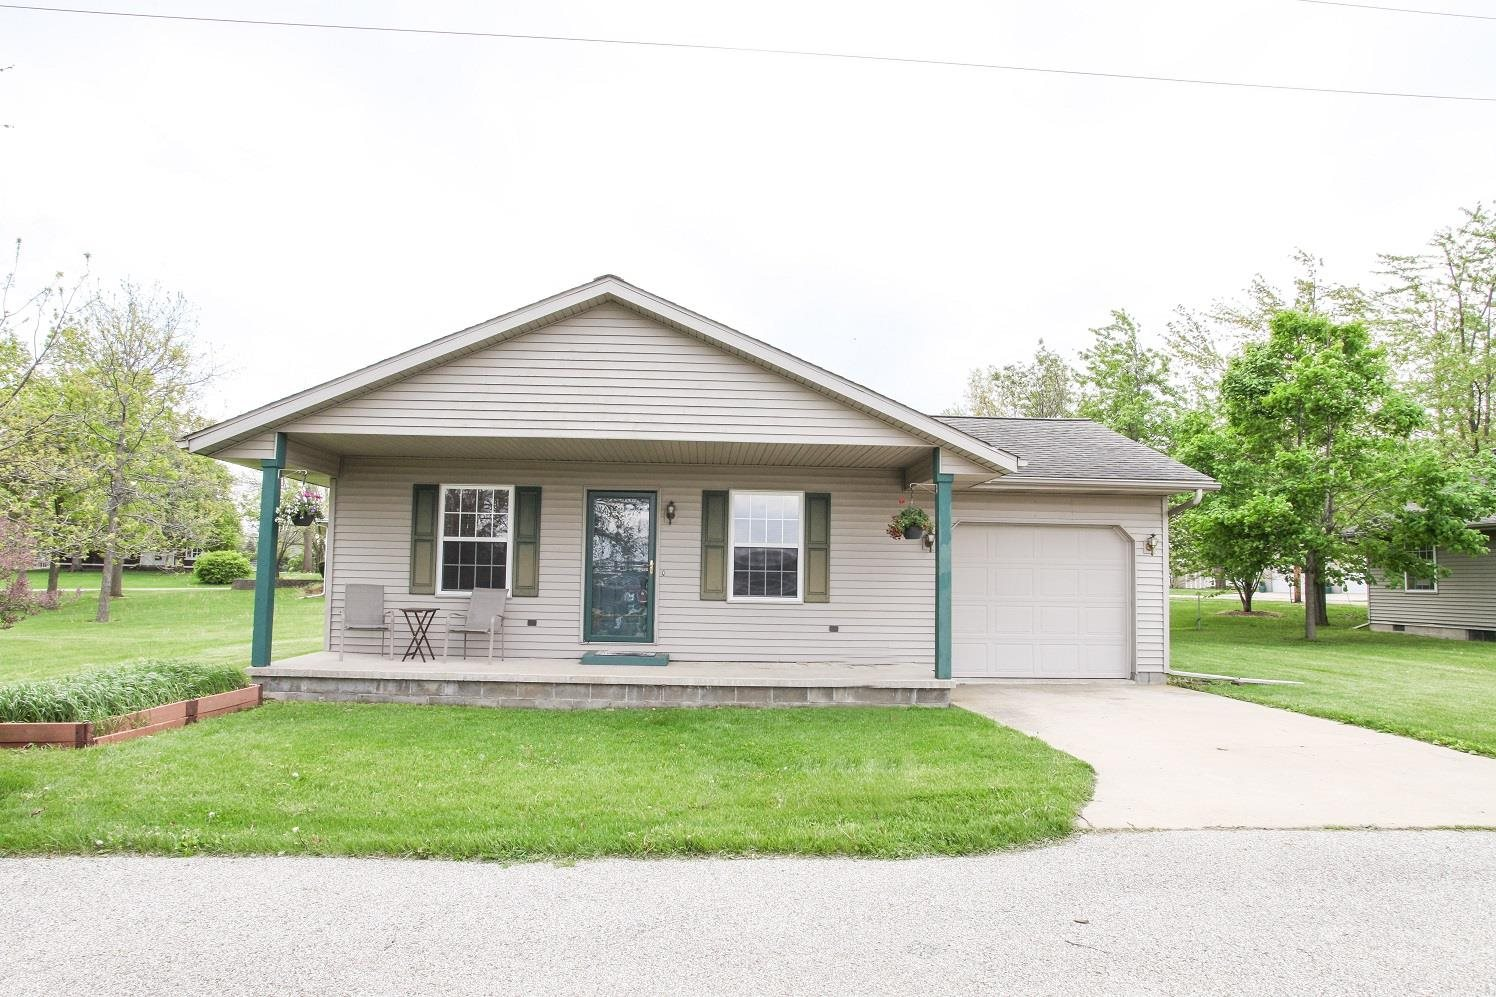 101 B S STATE Property Photo - Danvers, IL real estate listing